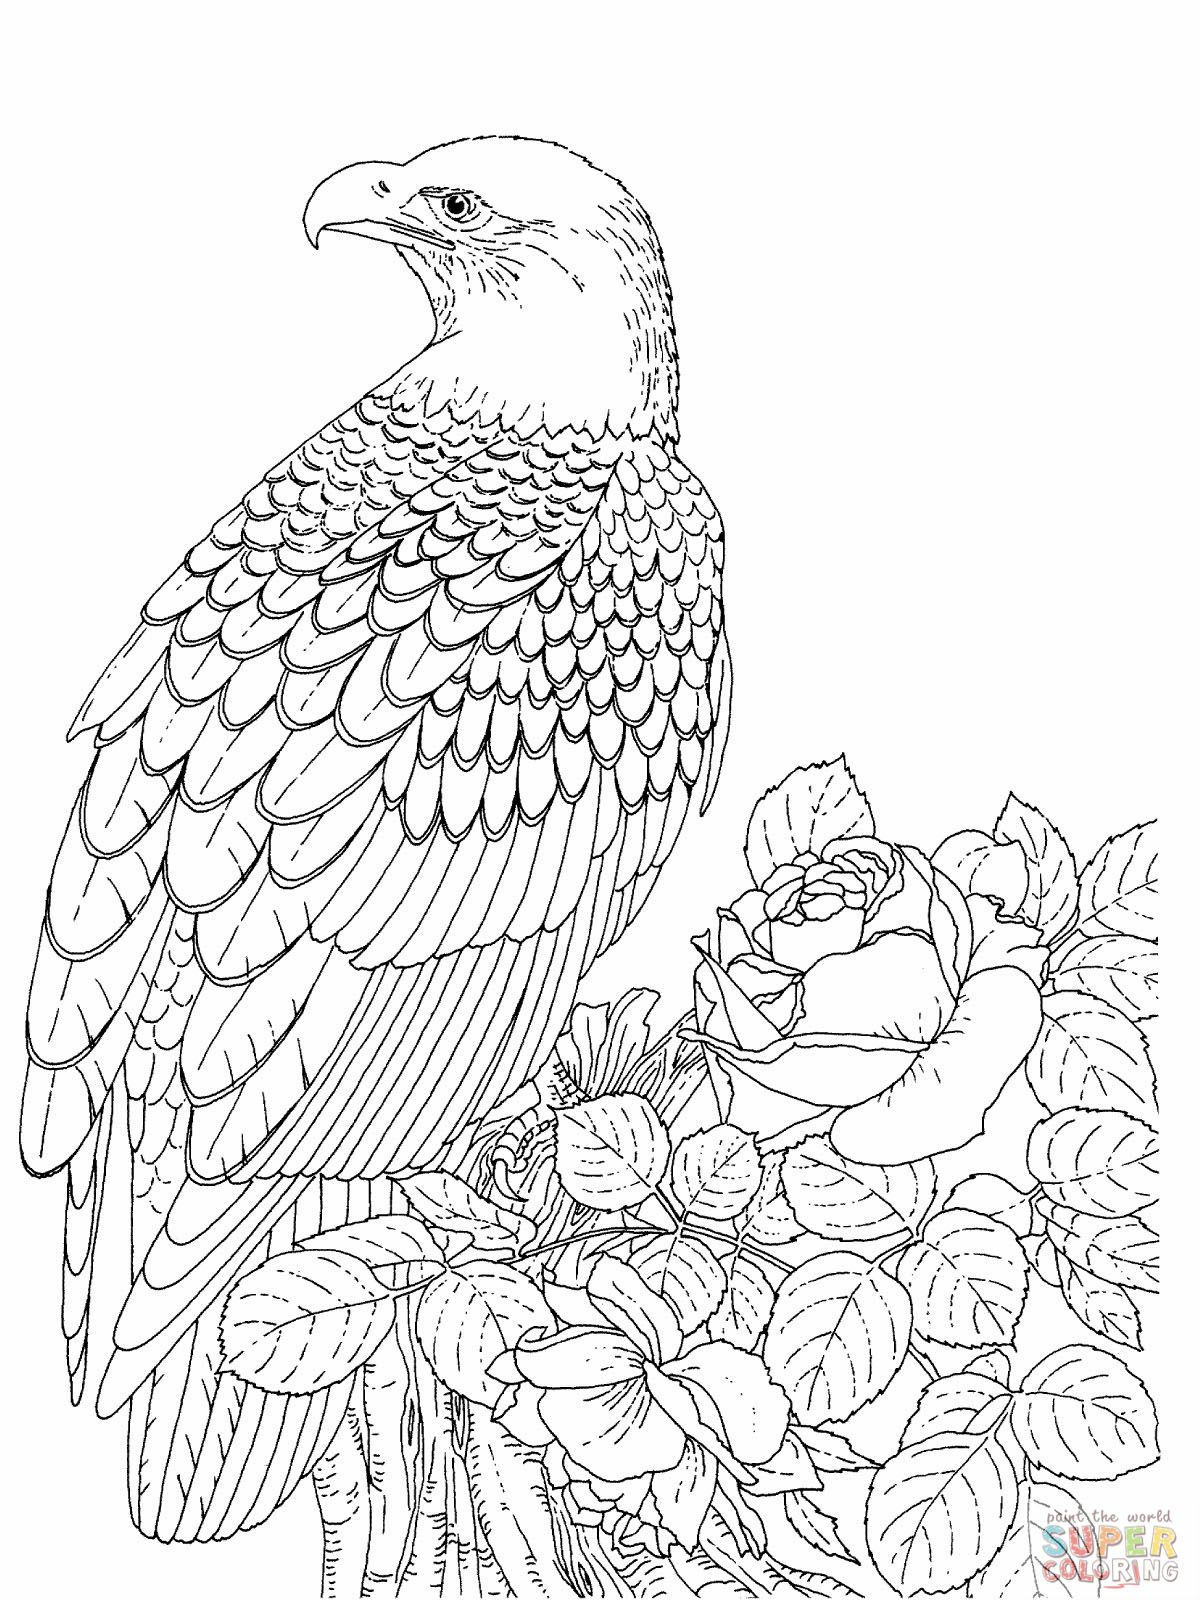 bald eagle coloring pagejpg 12001600 pixels - Realistic Wildlife Coloring Pages